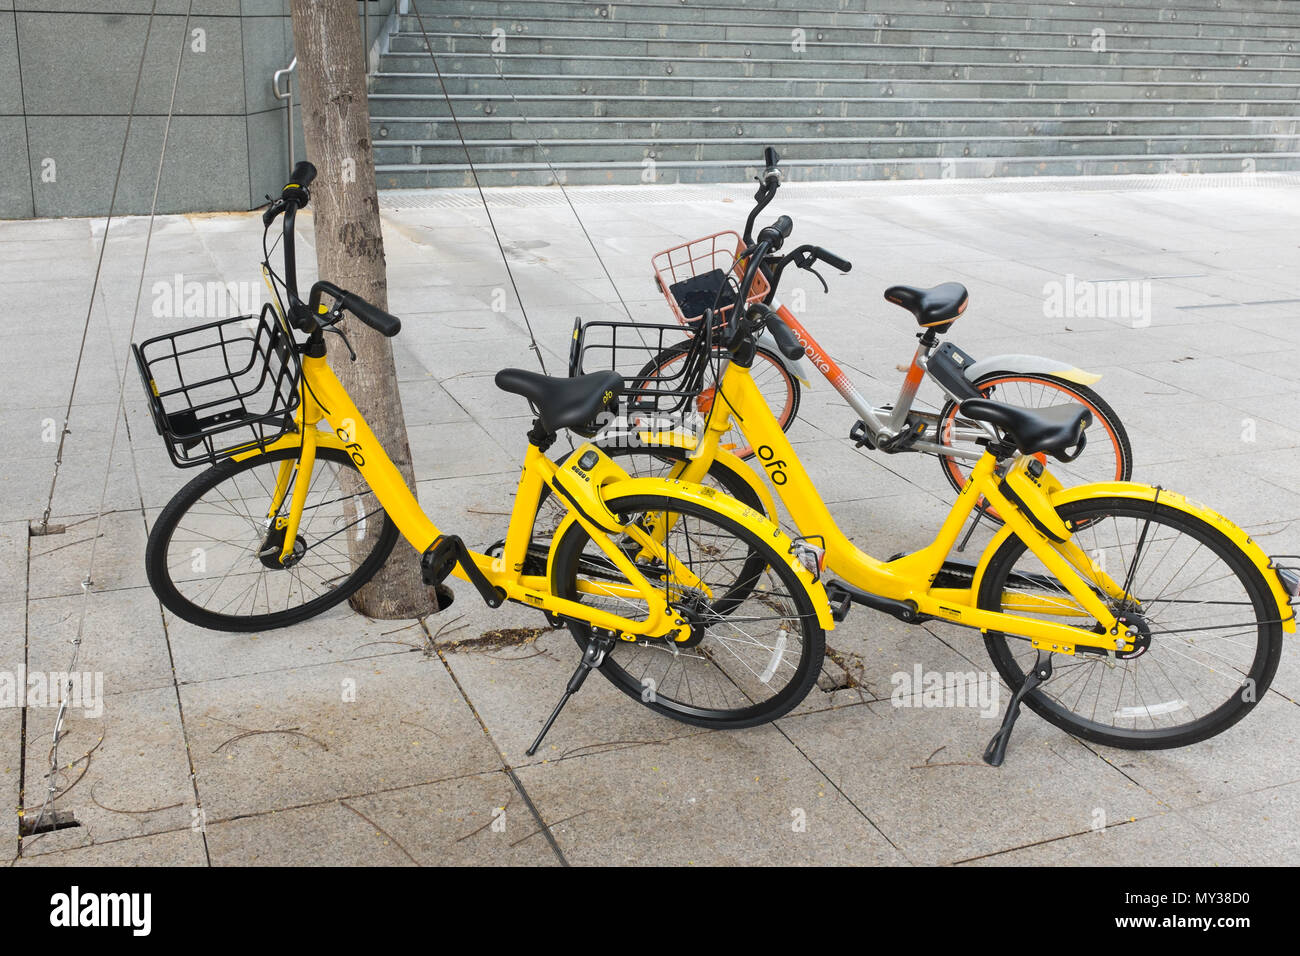 Station-free bike sharing yellow ofo bikes on the pavement in Singapore - Stock Image